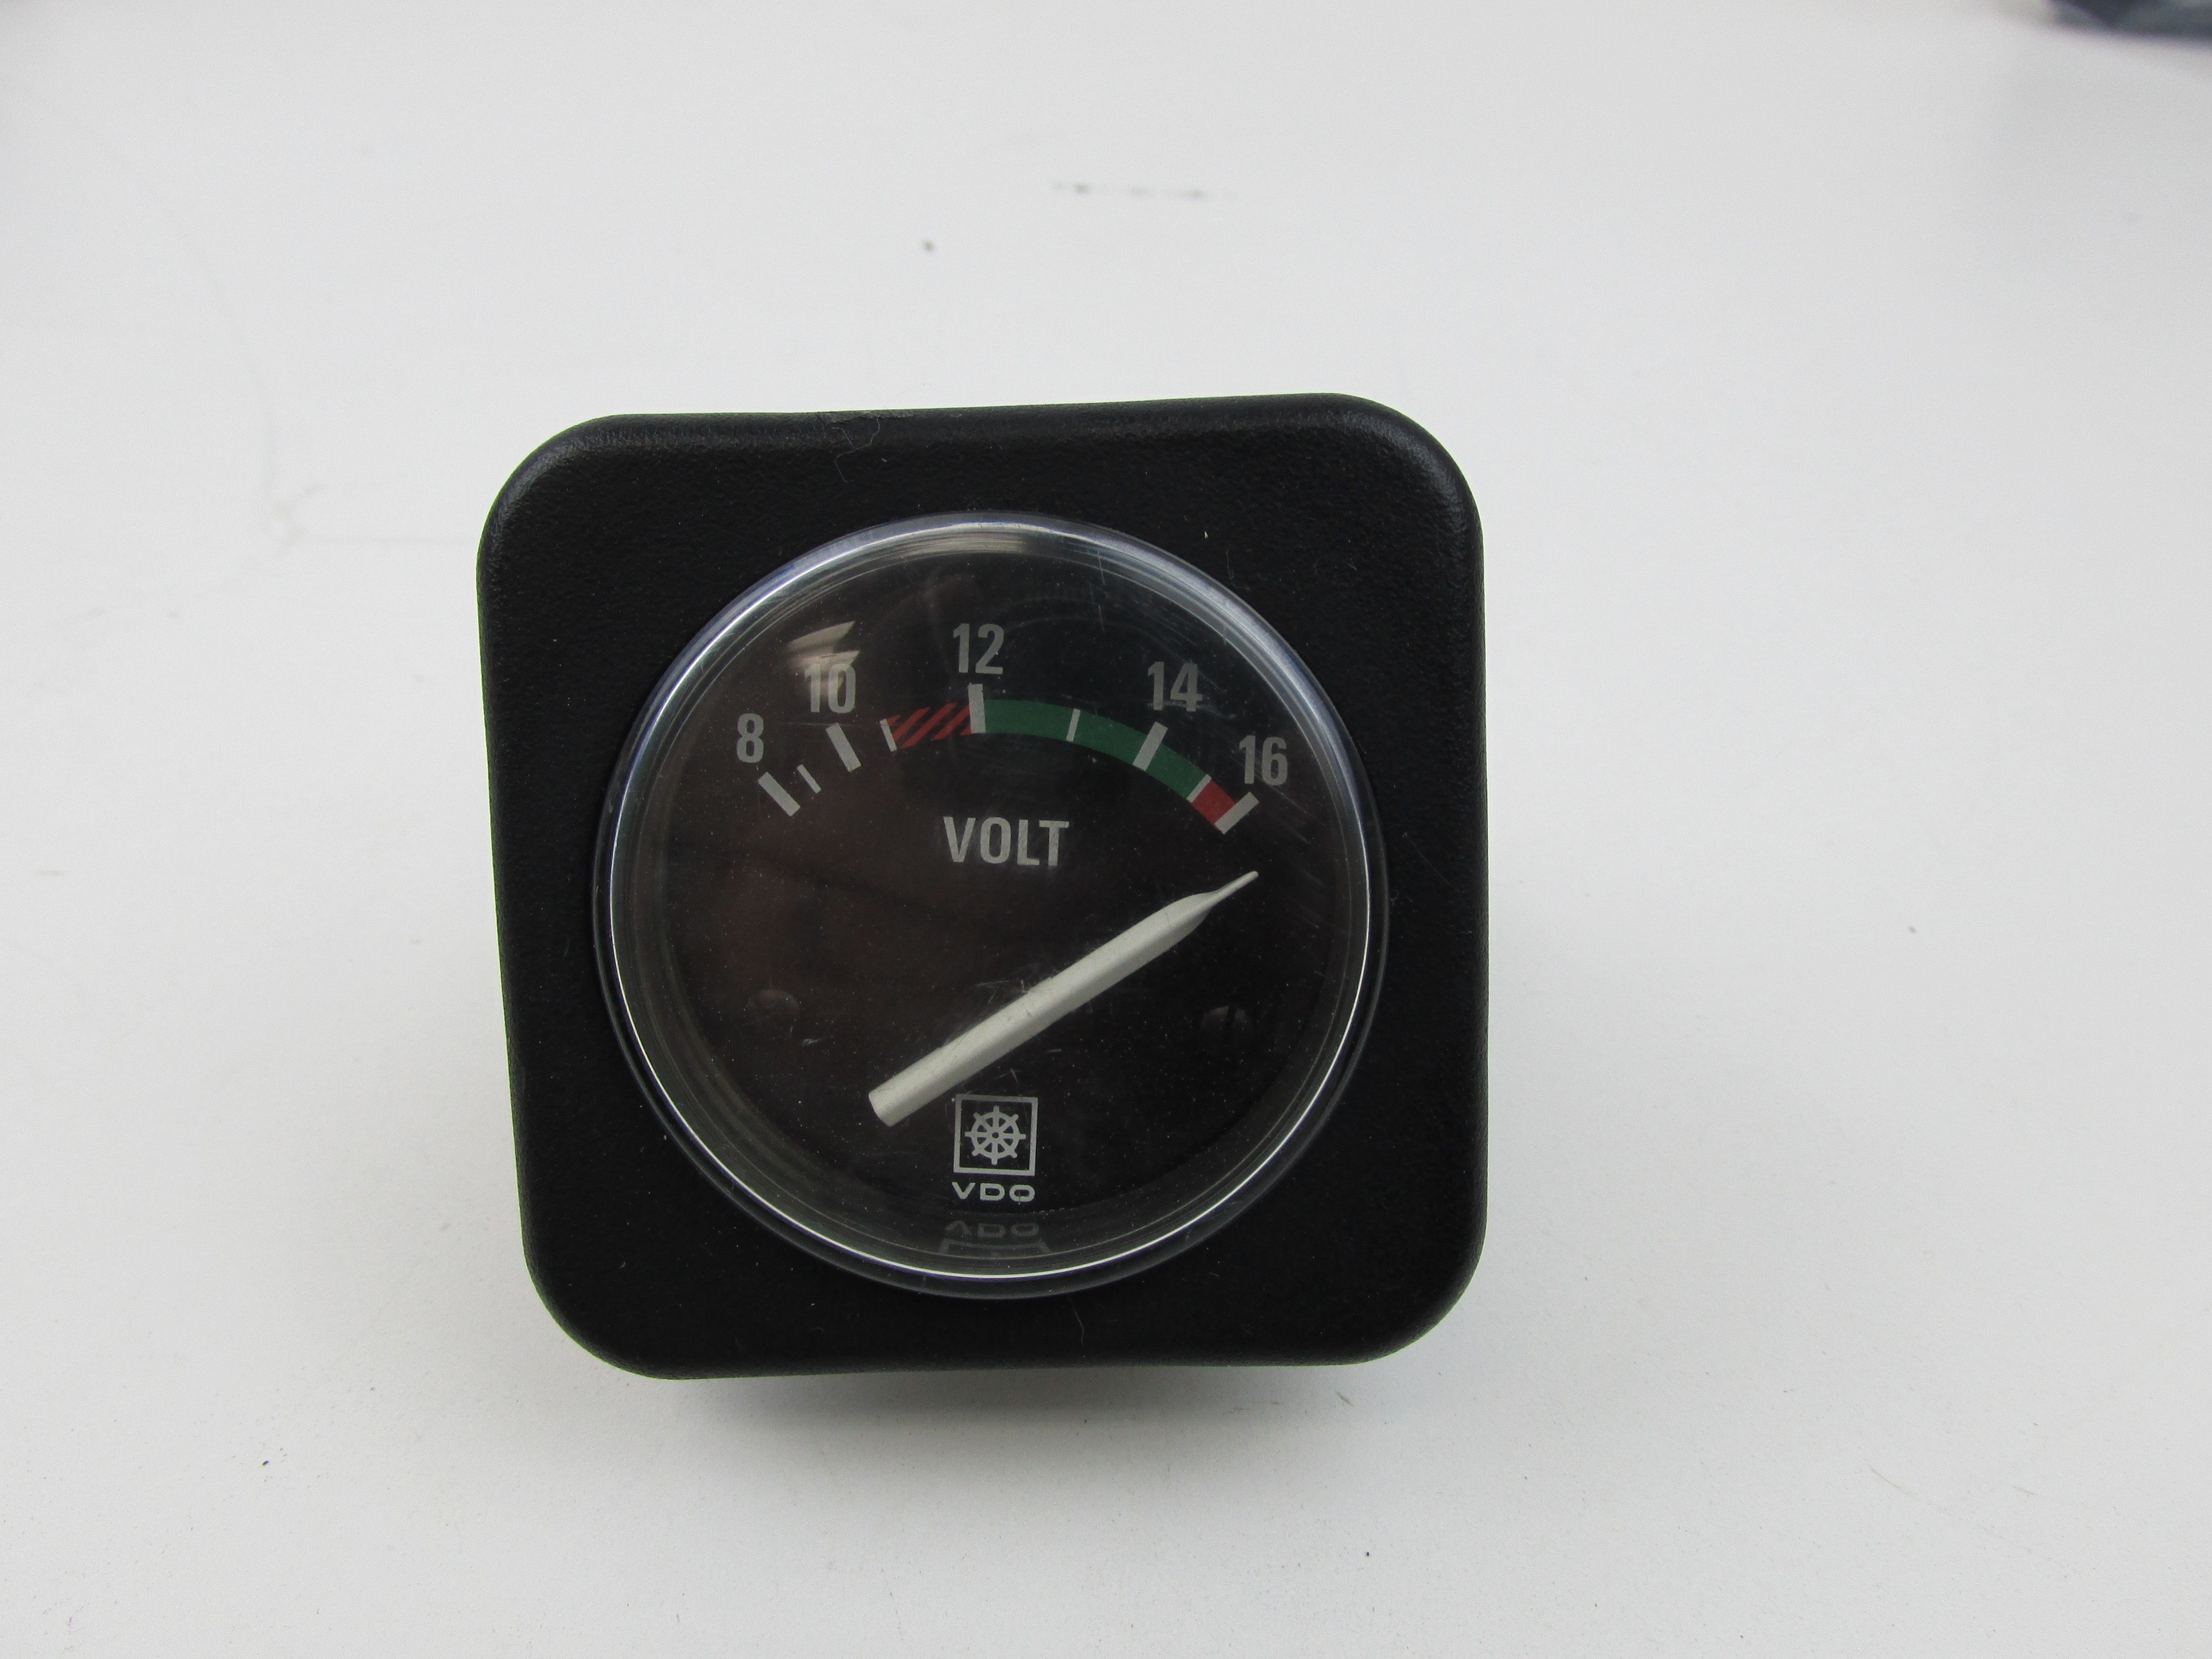 How to Wire A Vdo Transmission Pressure Gauge Cummins Vdo 12v Voltage Gauge Of How to Wire A Vdo Transmission Pressure Gauge